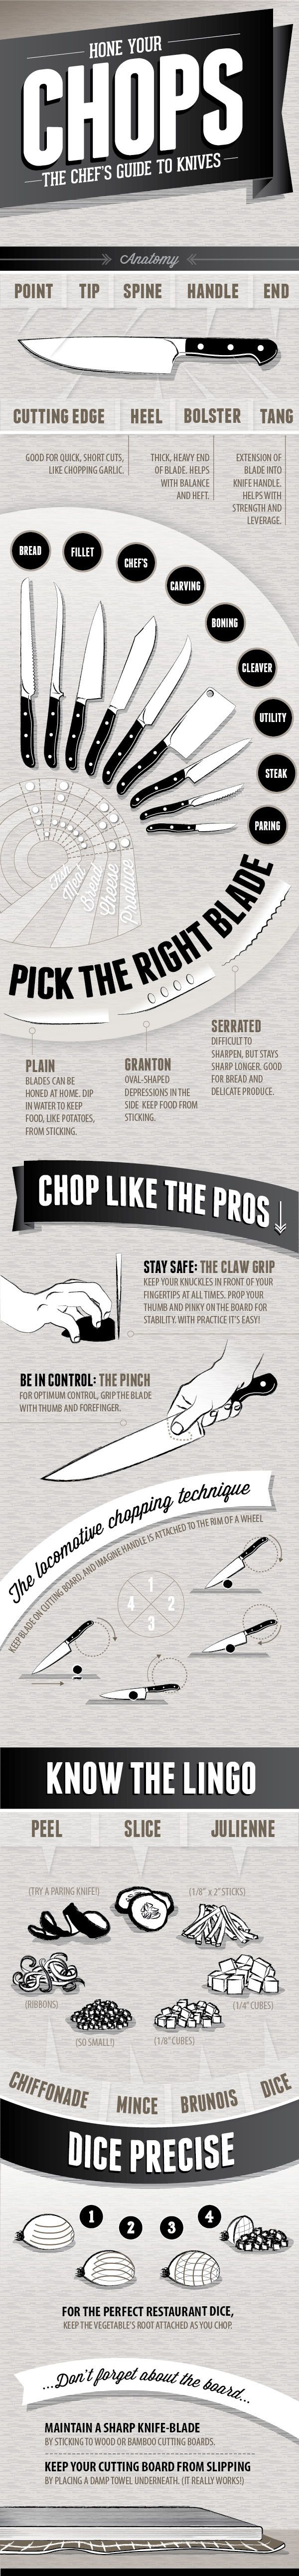 How's your knife skills!? Hone Your Chops: The Chef's Guide to Knives